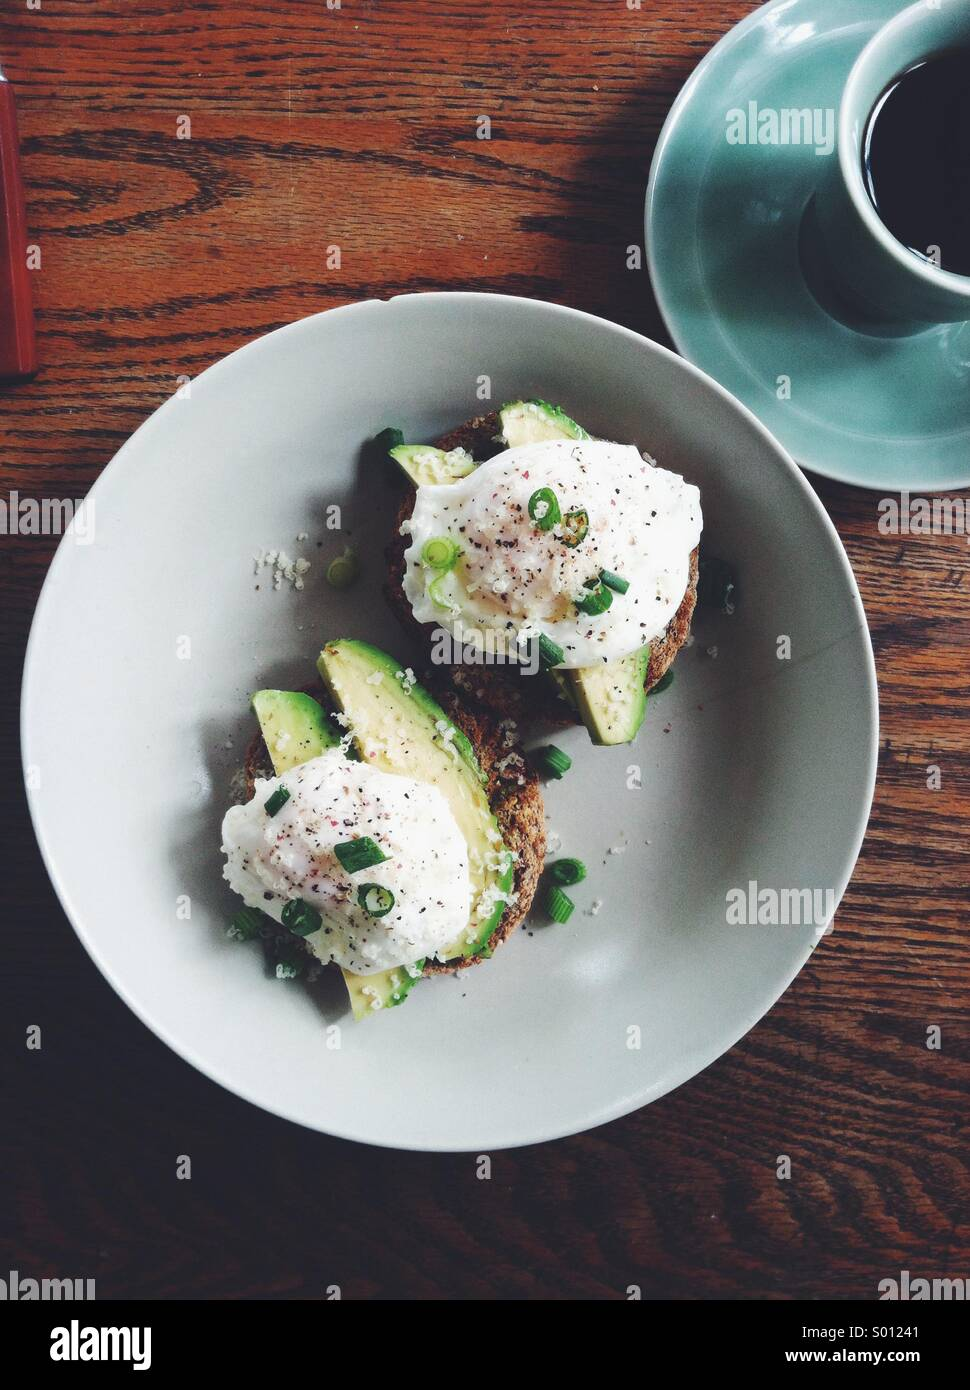 Poached eggs and avocado - Stock Image